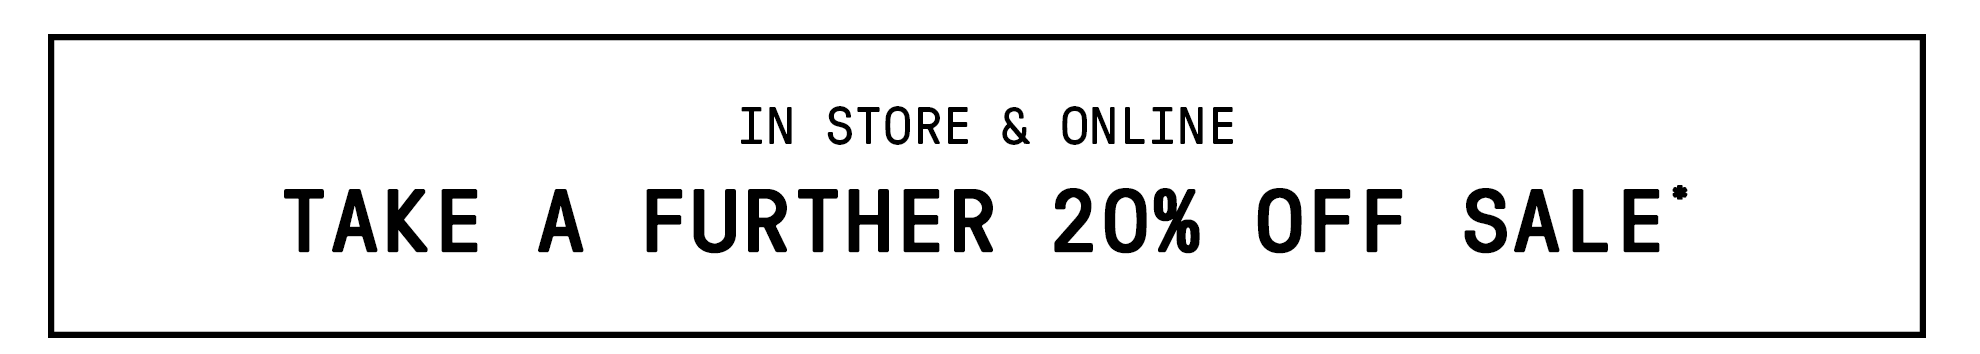 TAKE A FURTHER 20% OFF SALE*